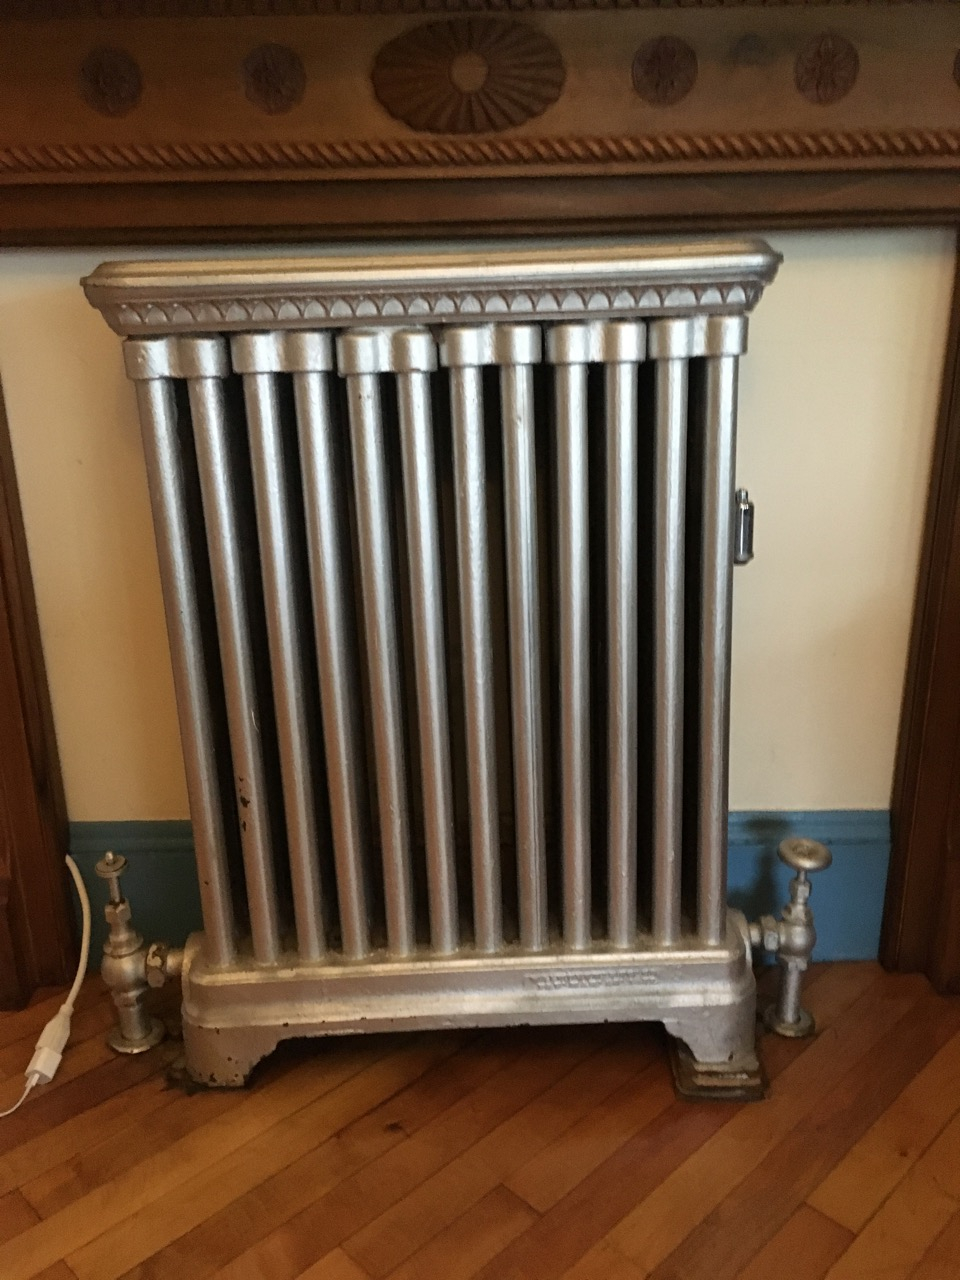 New steam boiler and radiator issues     Heating Help  The Wall